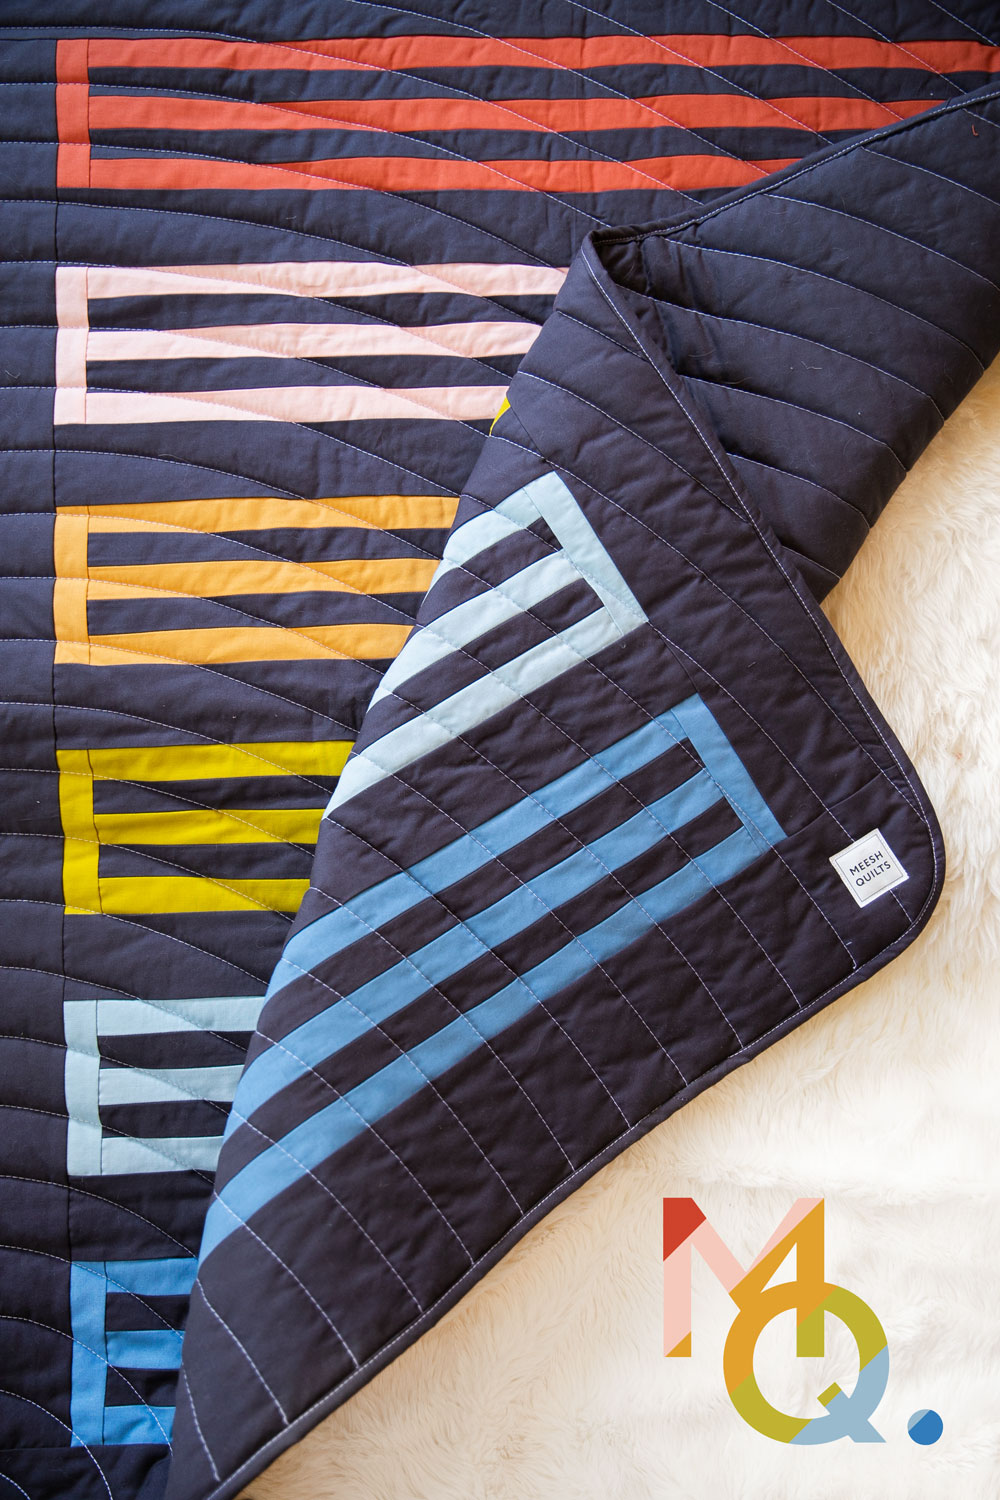 A small textiles company, based in Duluth, GA, makes rainbow baby quilts for a cause. Meesh Quilts is passionate about helping mothers and babies. suzyquilts.com #babyquilts